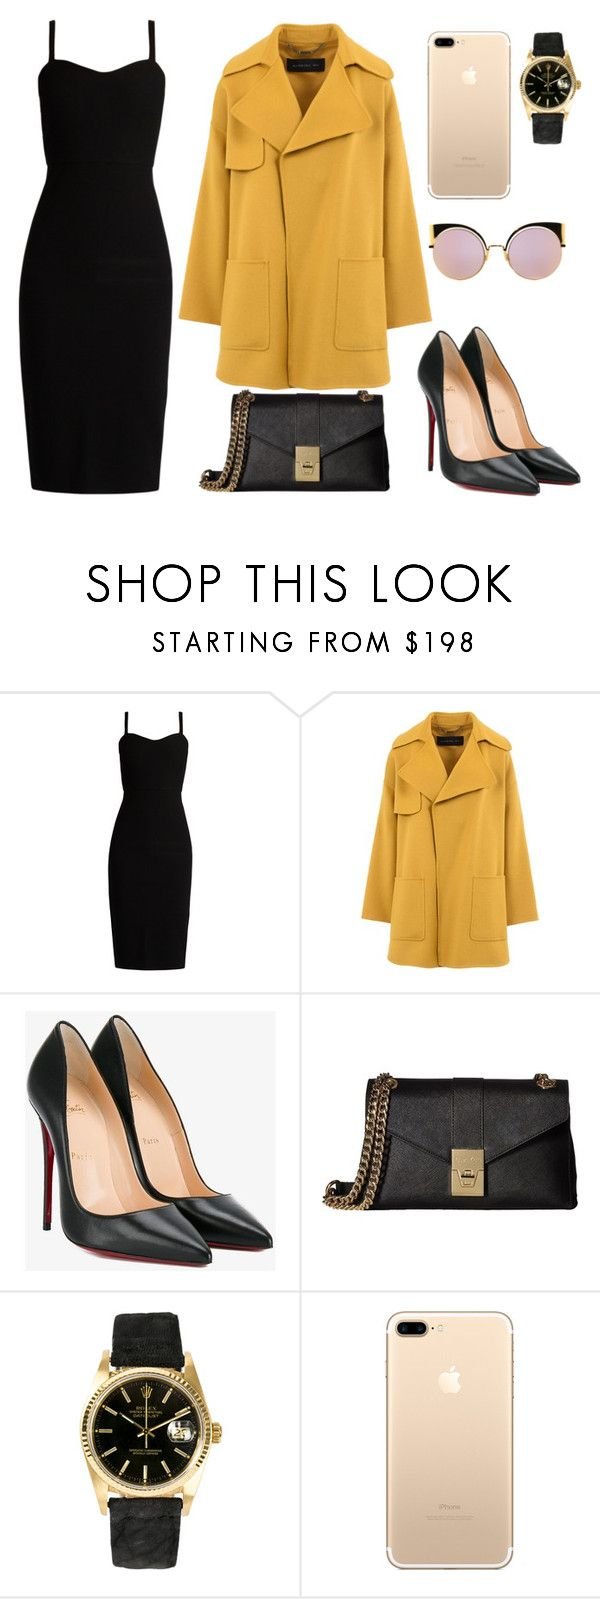 """Untitled #268"" by jovanaaxx on Polyvore featuring MaxMara, Barbara Bui, Christian Louboutin, Calvin Klein, Rolex and Fendi"